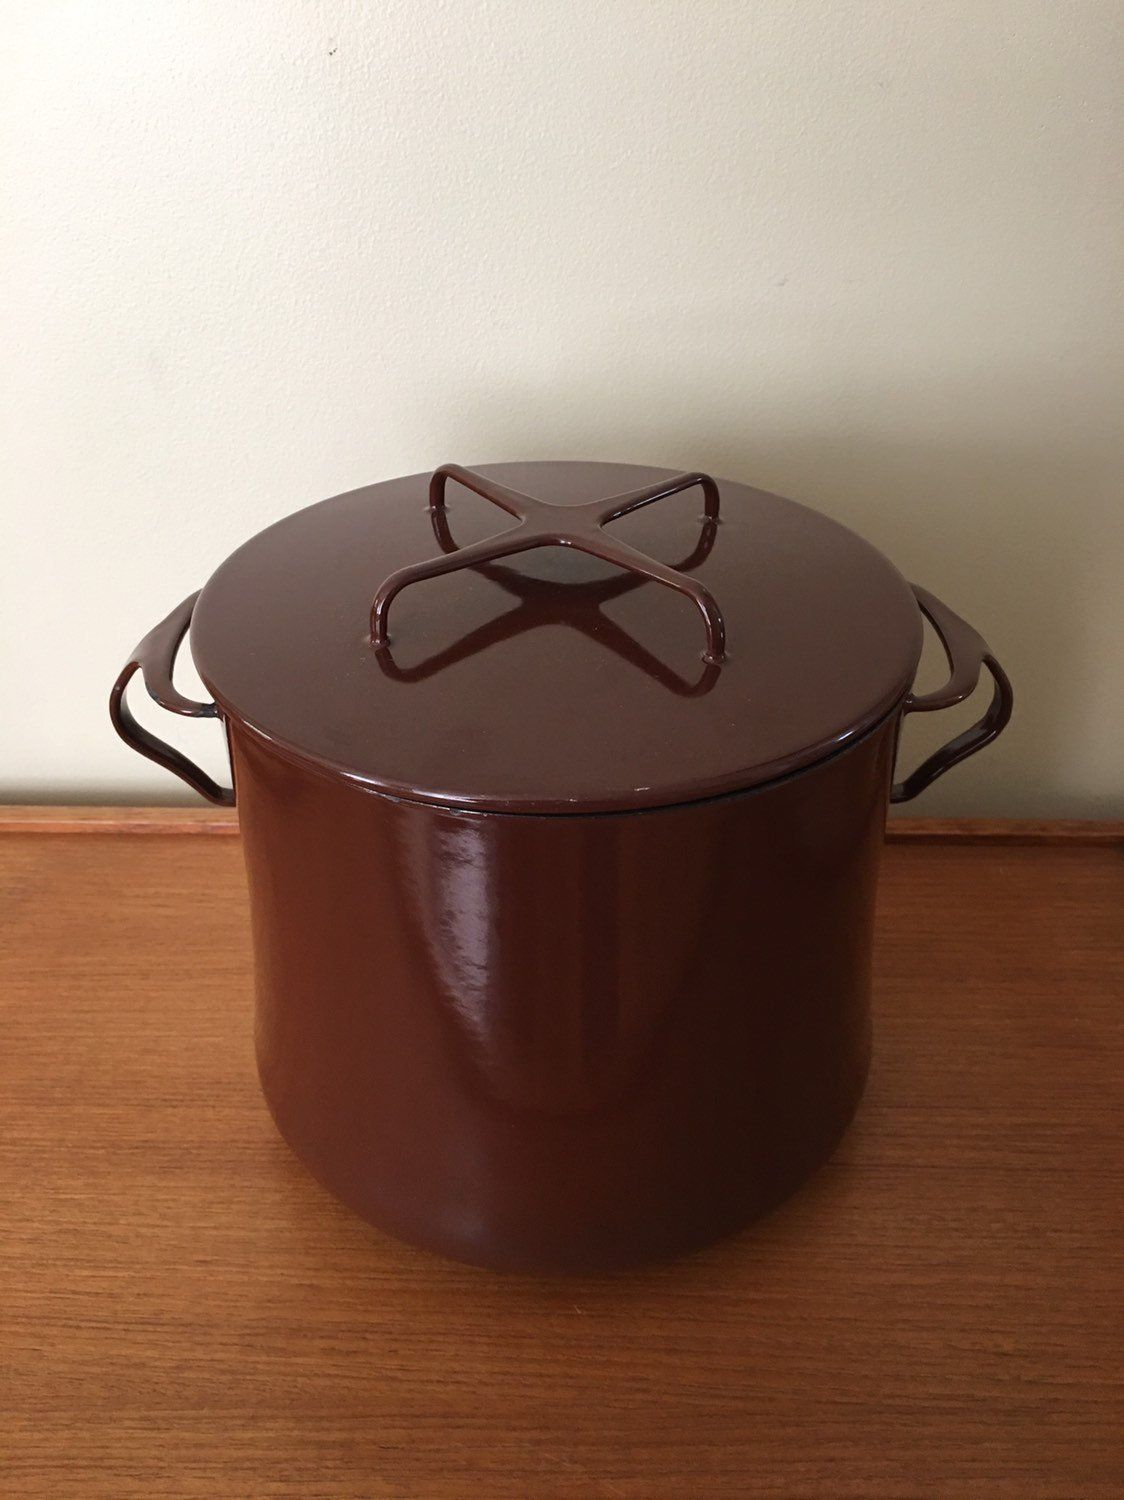 Vintage Dansk Kobenstyle 6 Qt Stockpot Brown Enamel Dutch Oven Dansk Designs France Mid Century Modern Dutch Modern Cake Stand Modern Square Dining Table